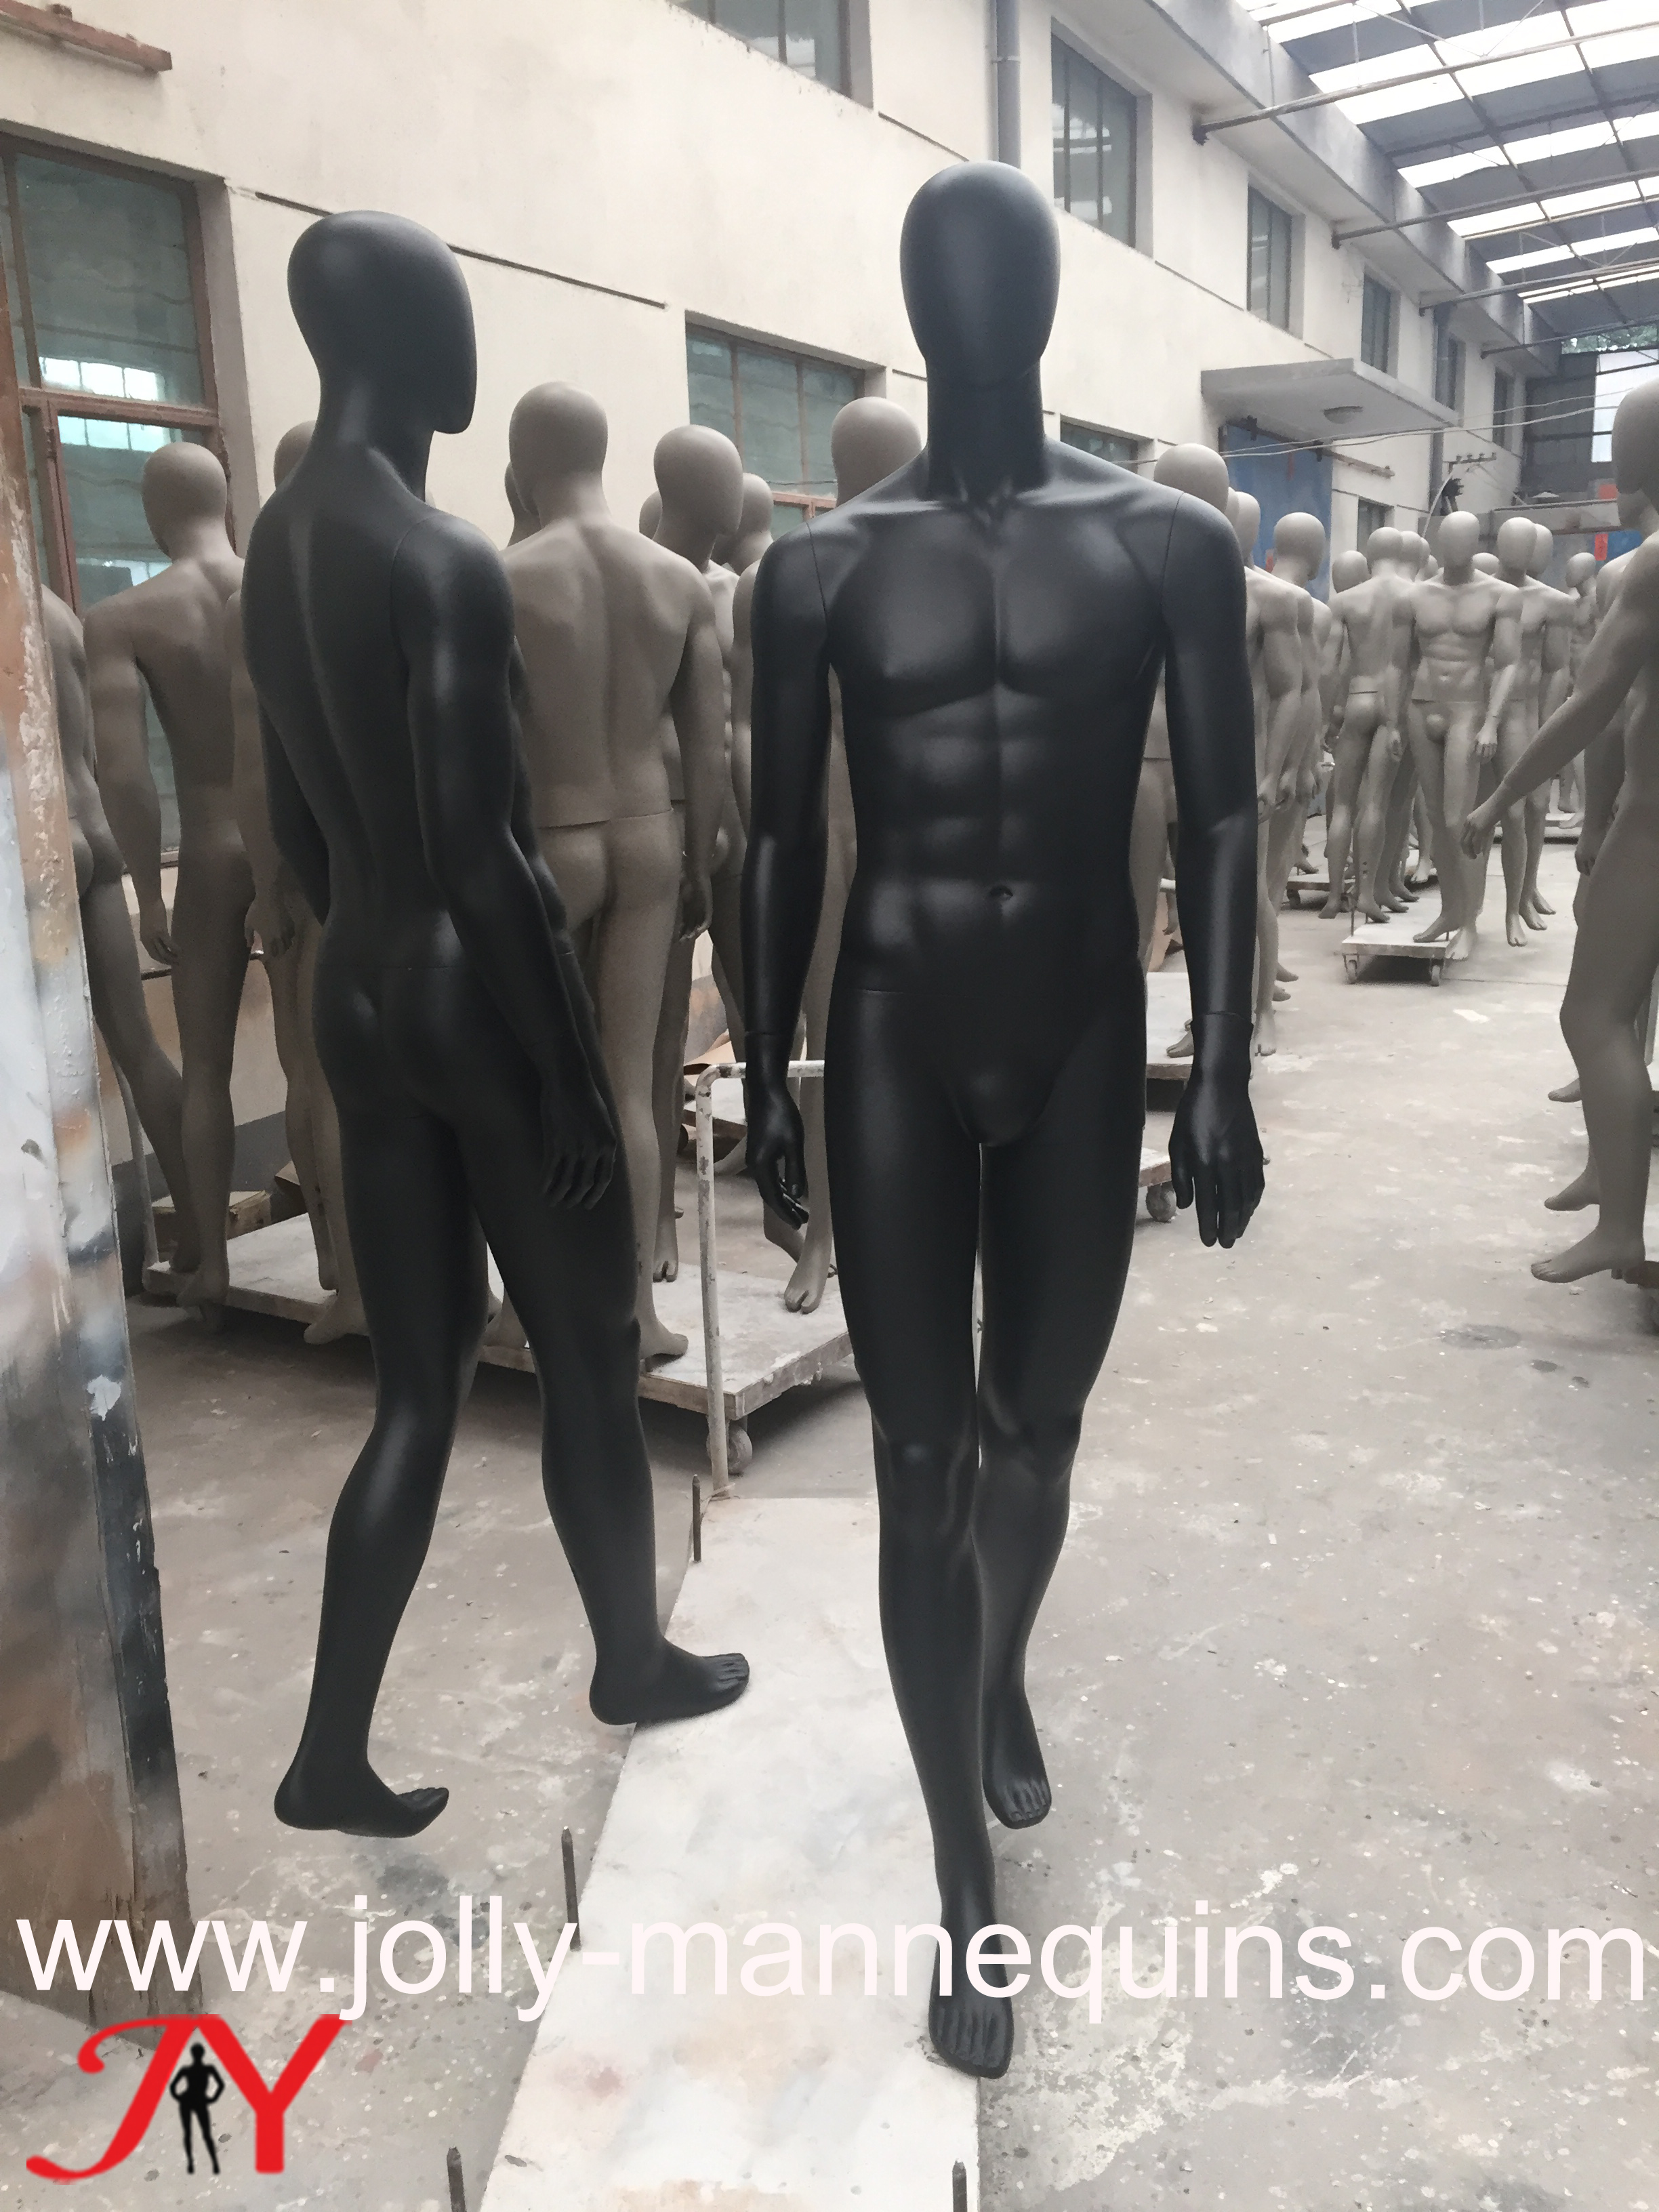 Jolly mannequins-male sport wa..